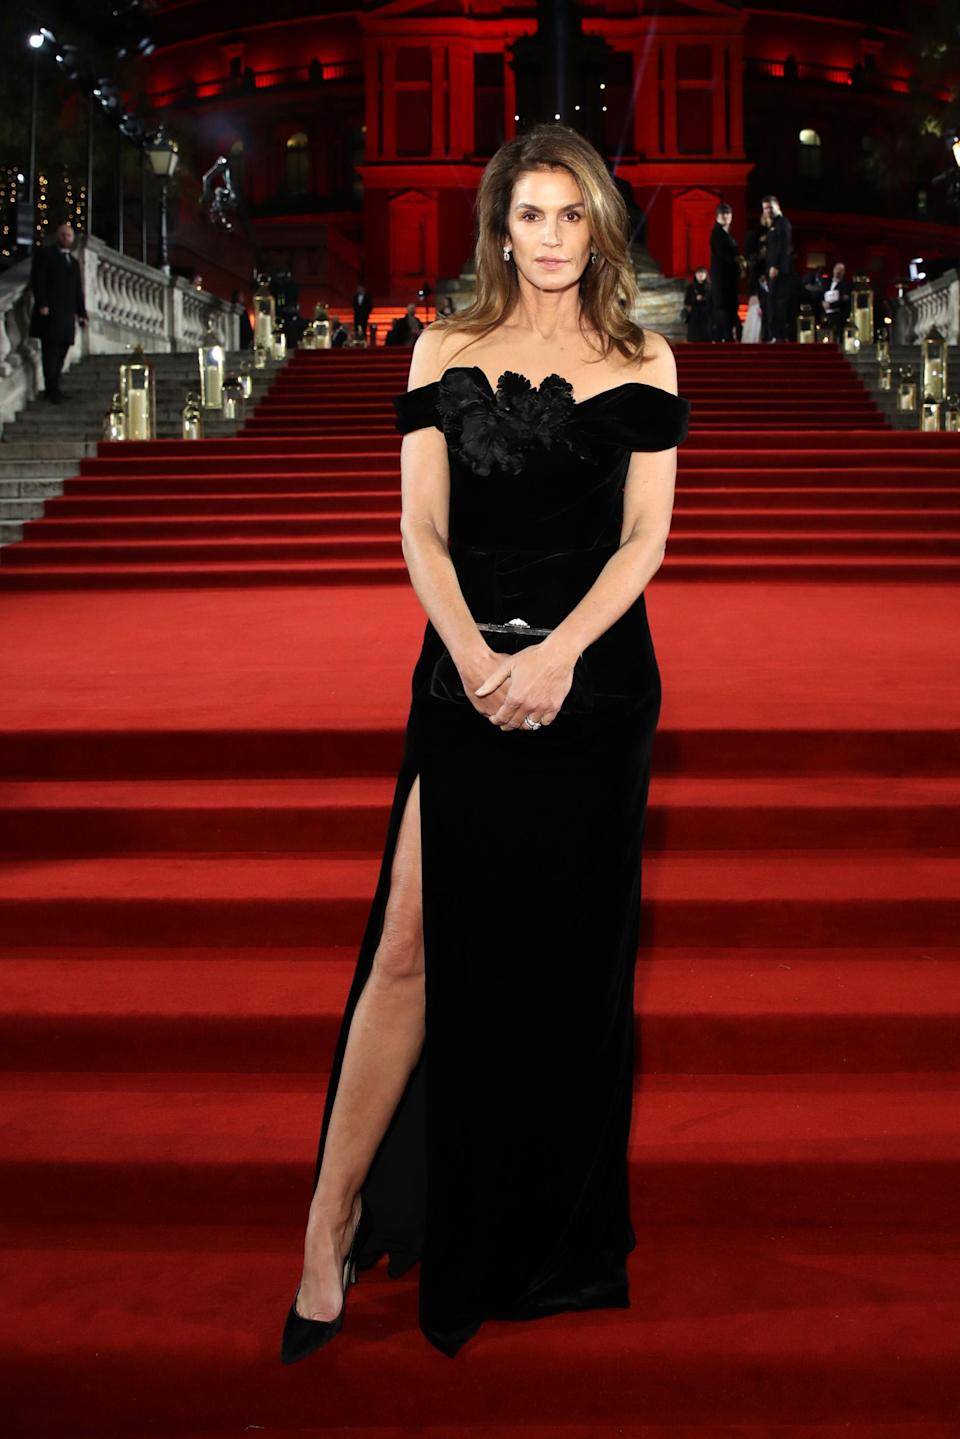 <p>Nineties model Cindy Crawford took to the red carpet in a cold-shoulder black gown with co-ordinating accessories. But it's the thigh-high split that really made the ensemble. <em>[Photo: Getty]</em> </p>